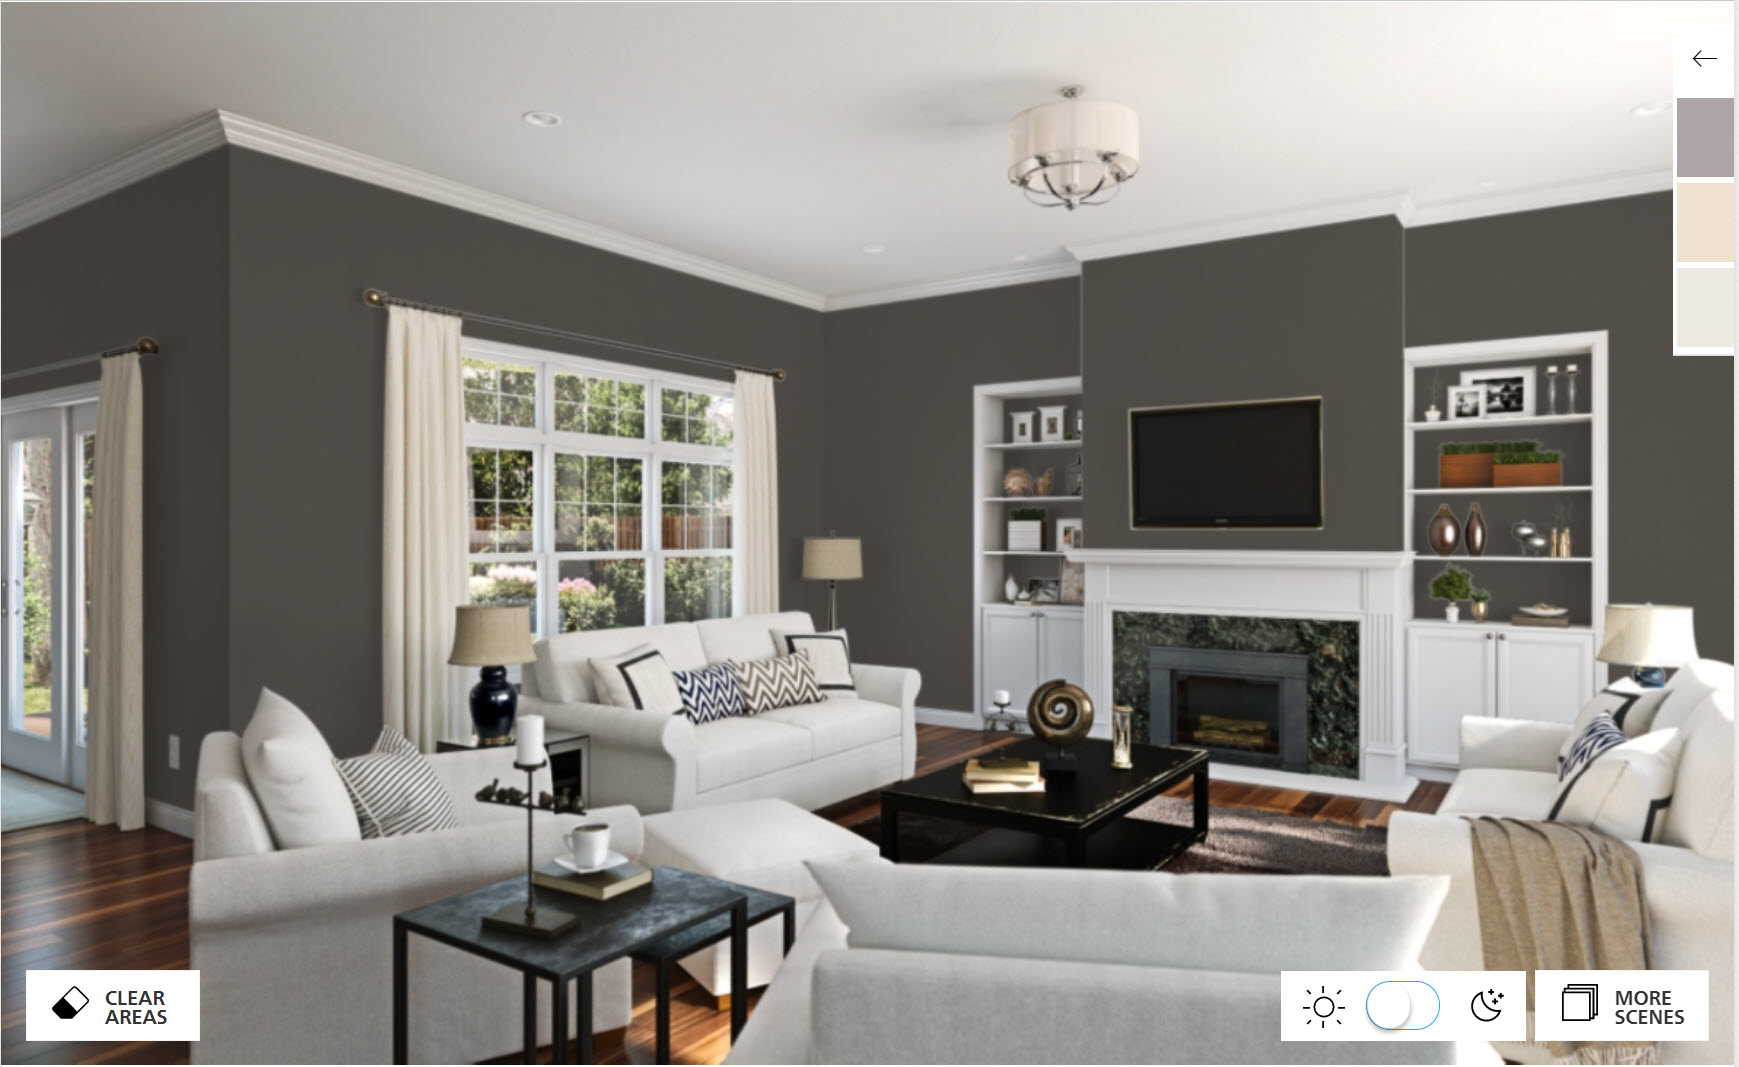 Walls painted in the Sherwin-Williams color, Urbane Bronze